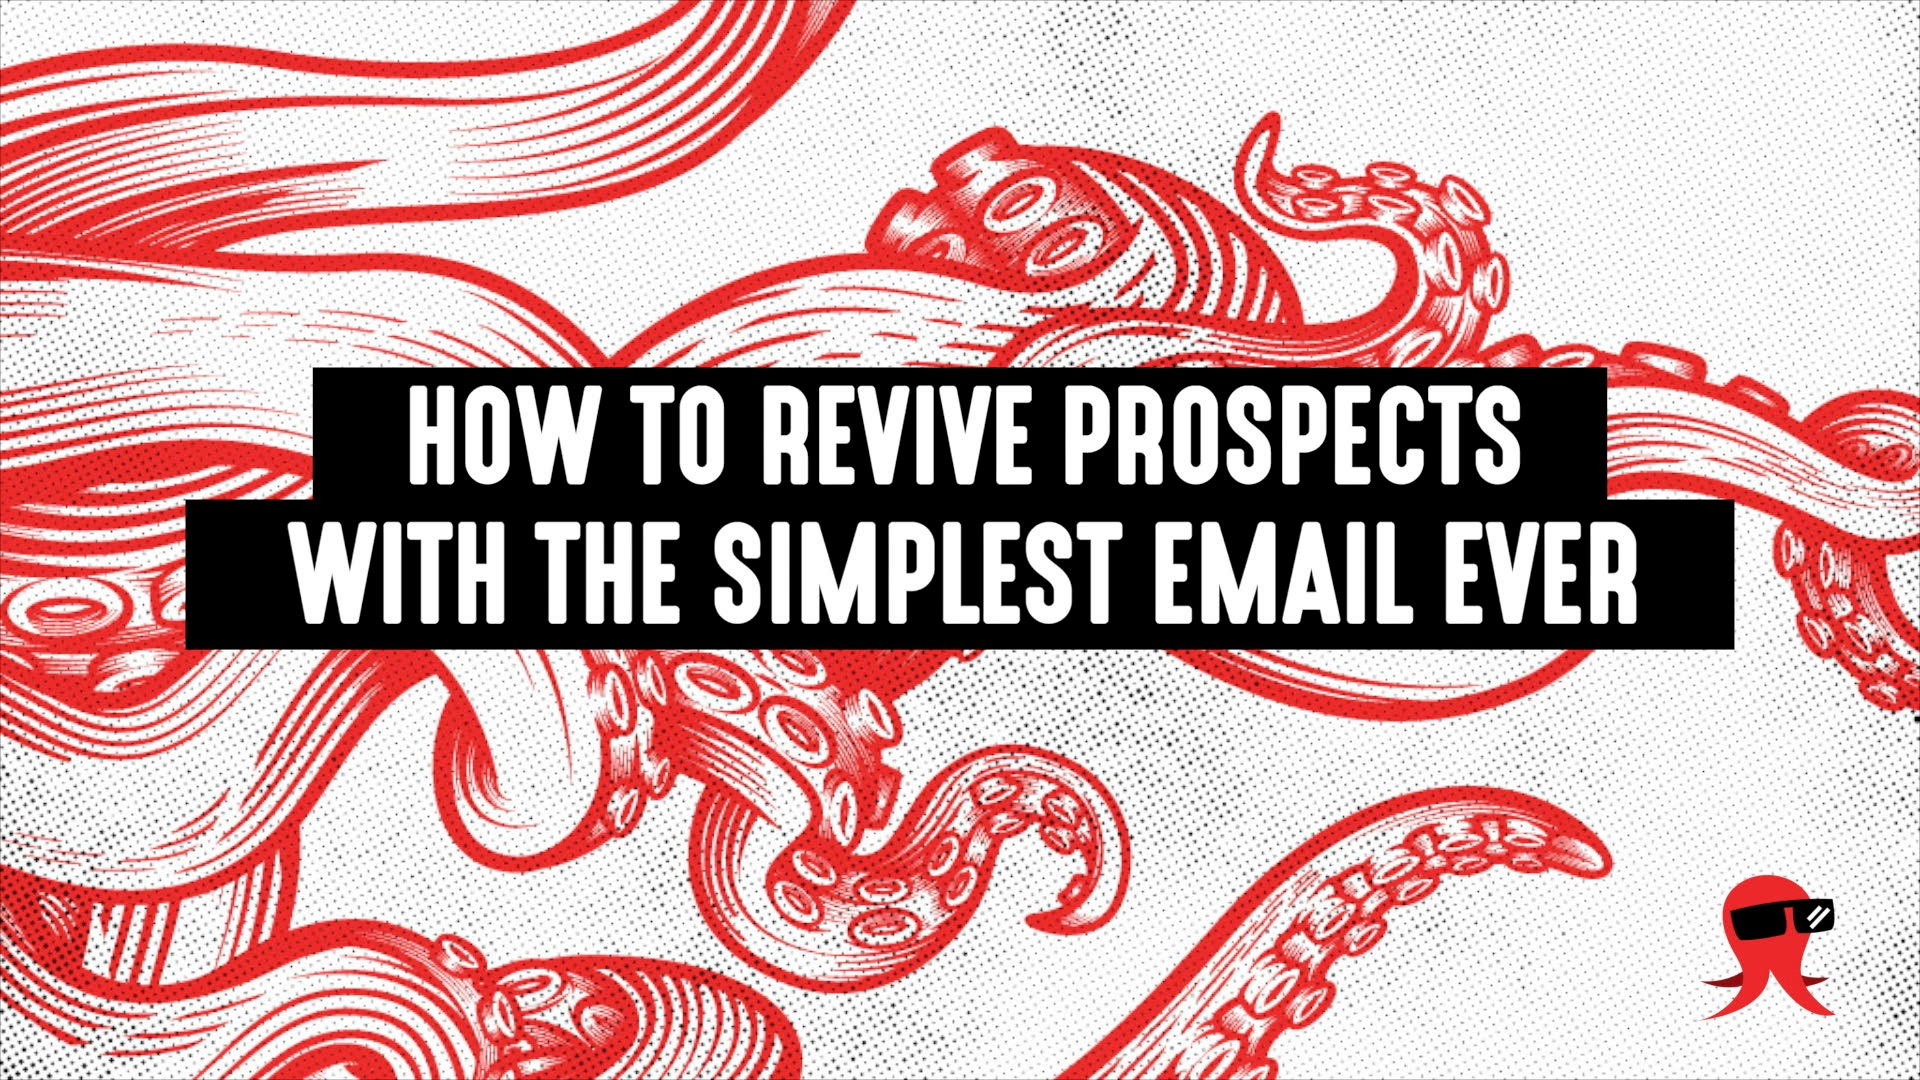 How to Revive Prospects With the Simplest Email Ever